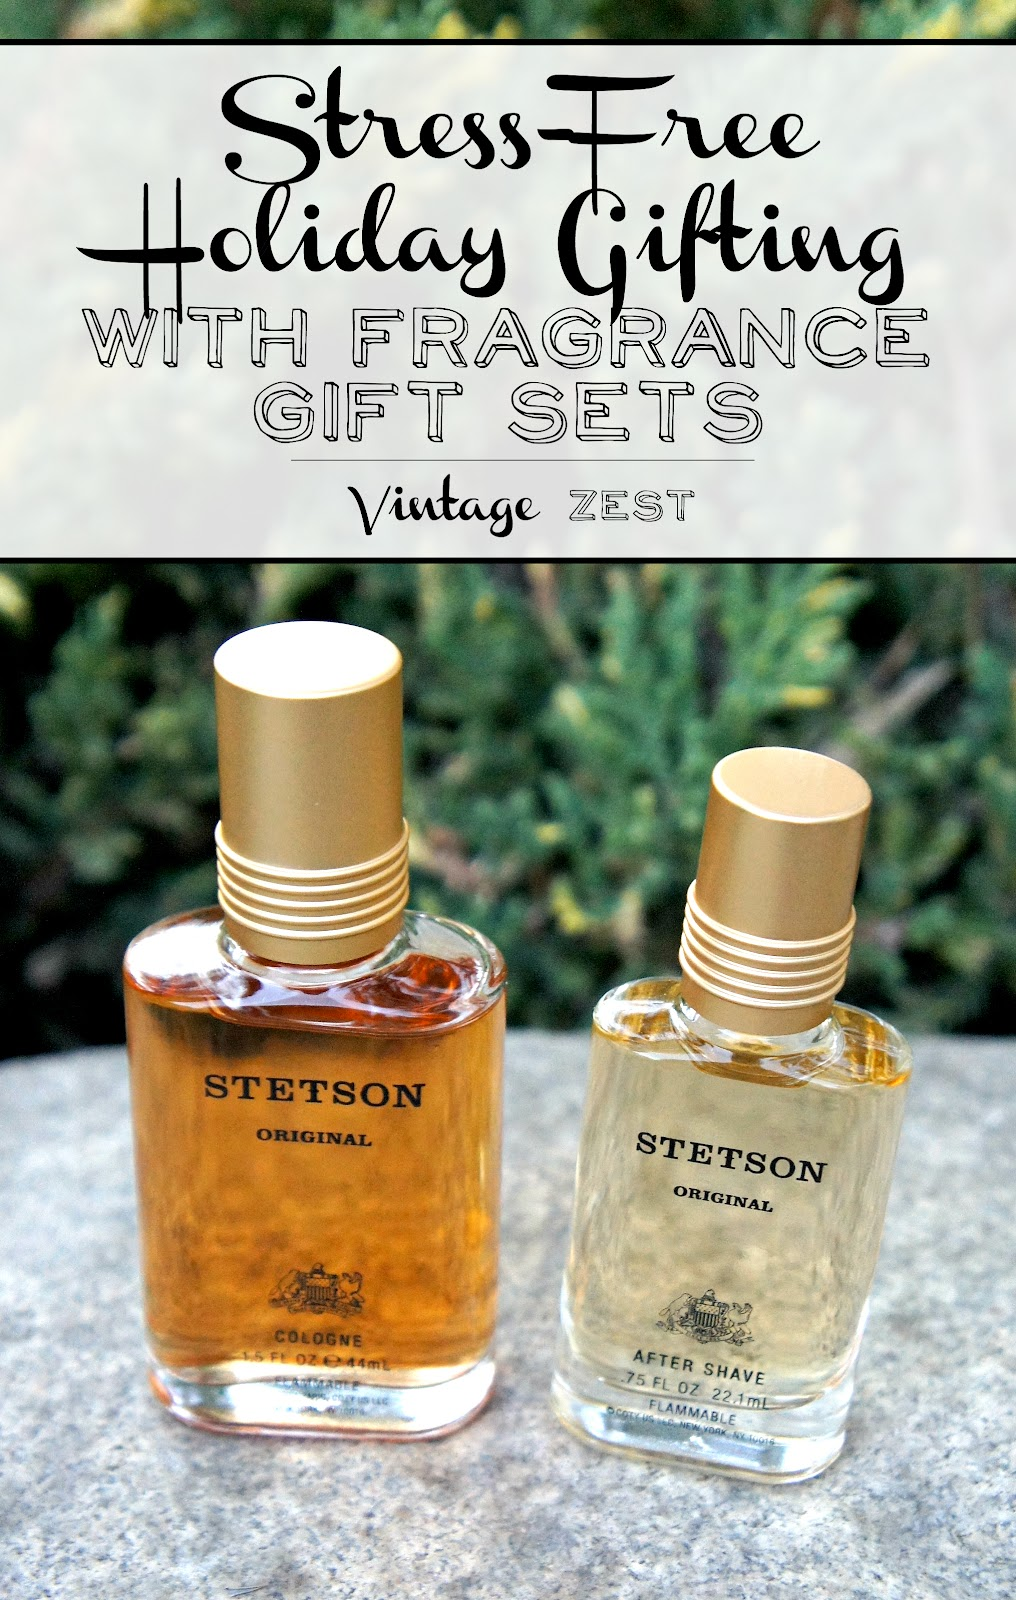 Stress-Free Holiday Gifting with Fragrance Gift Sets on Diane's Vintage Zest!  #ad #GiftingAMemory